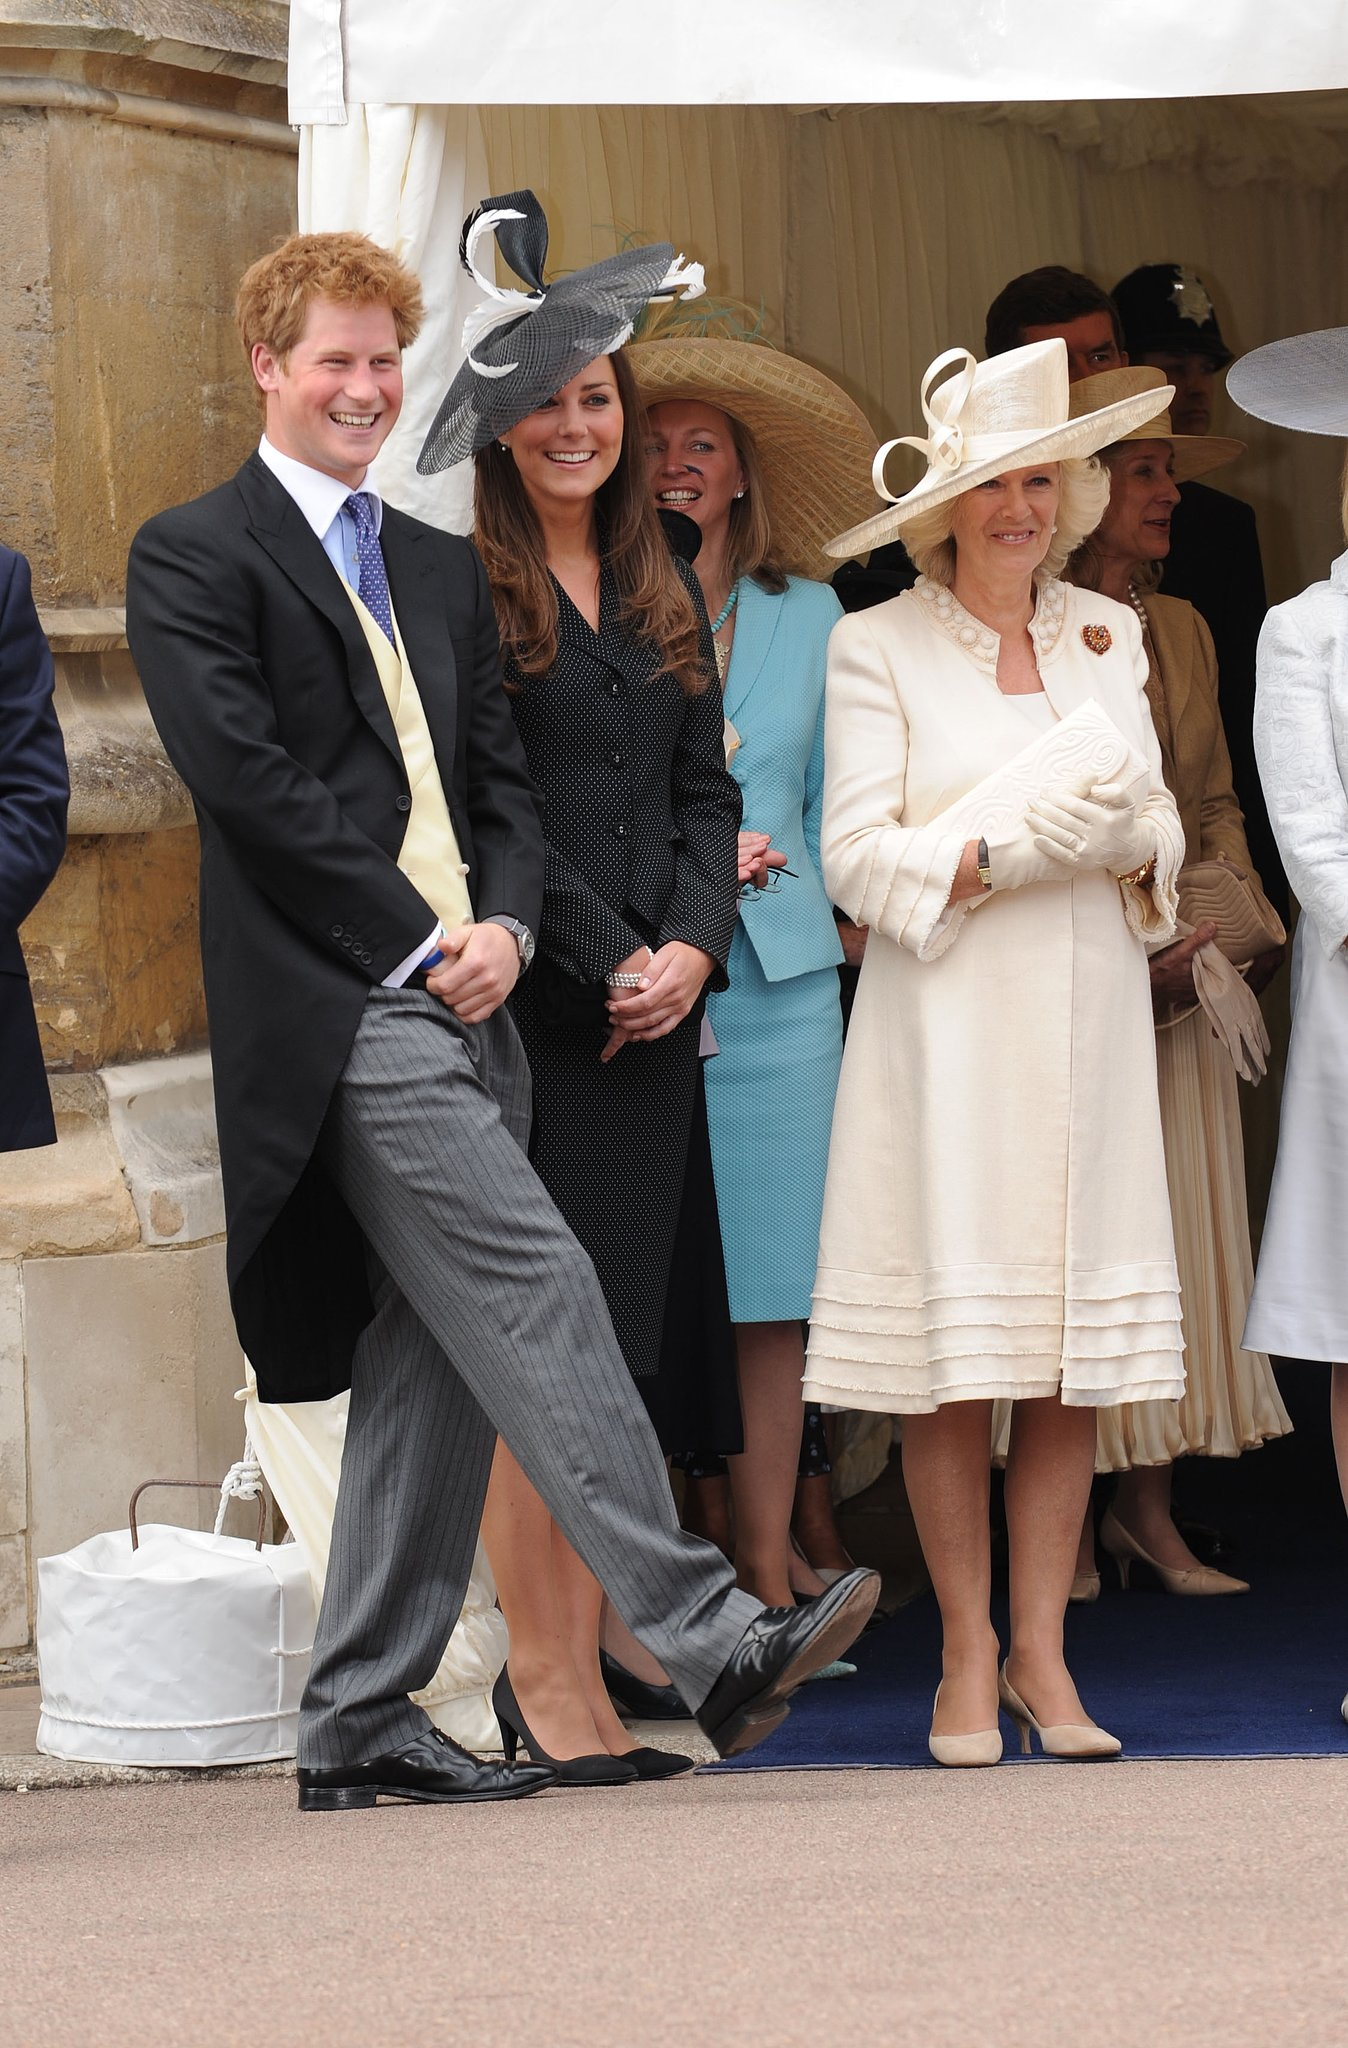 Prince Harry and Kate Middleton shared a laugh during an event in England in 2008.